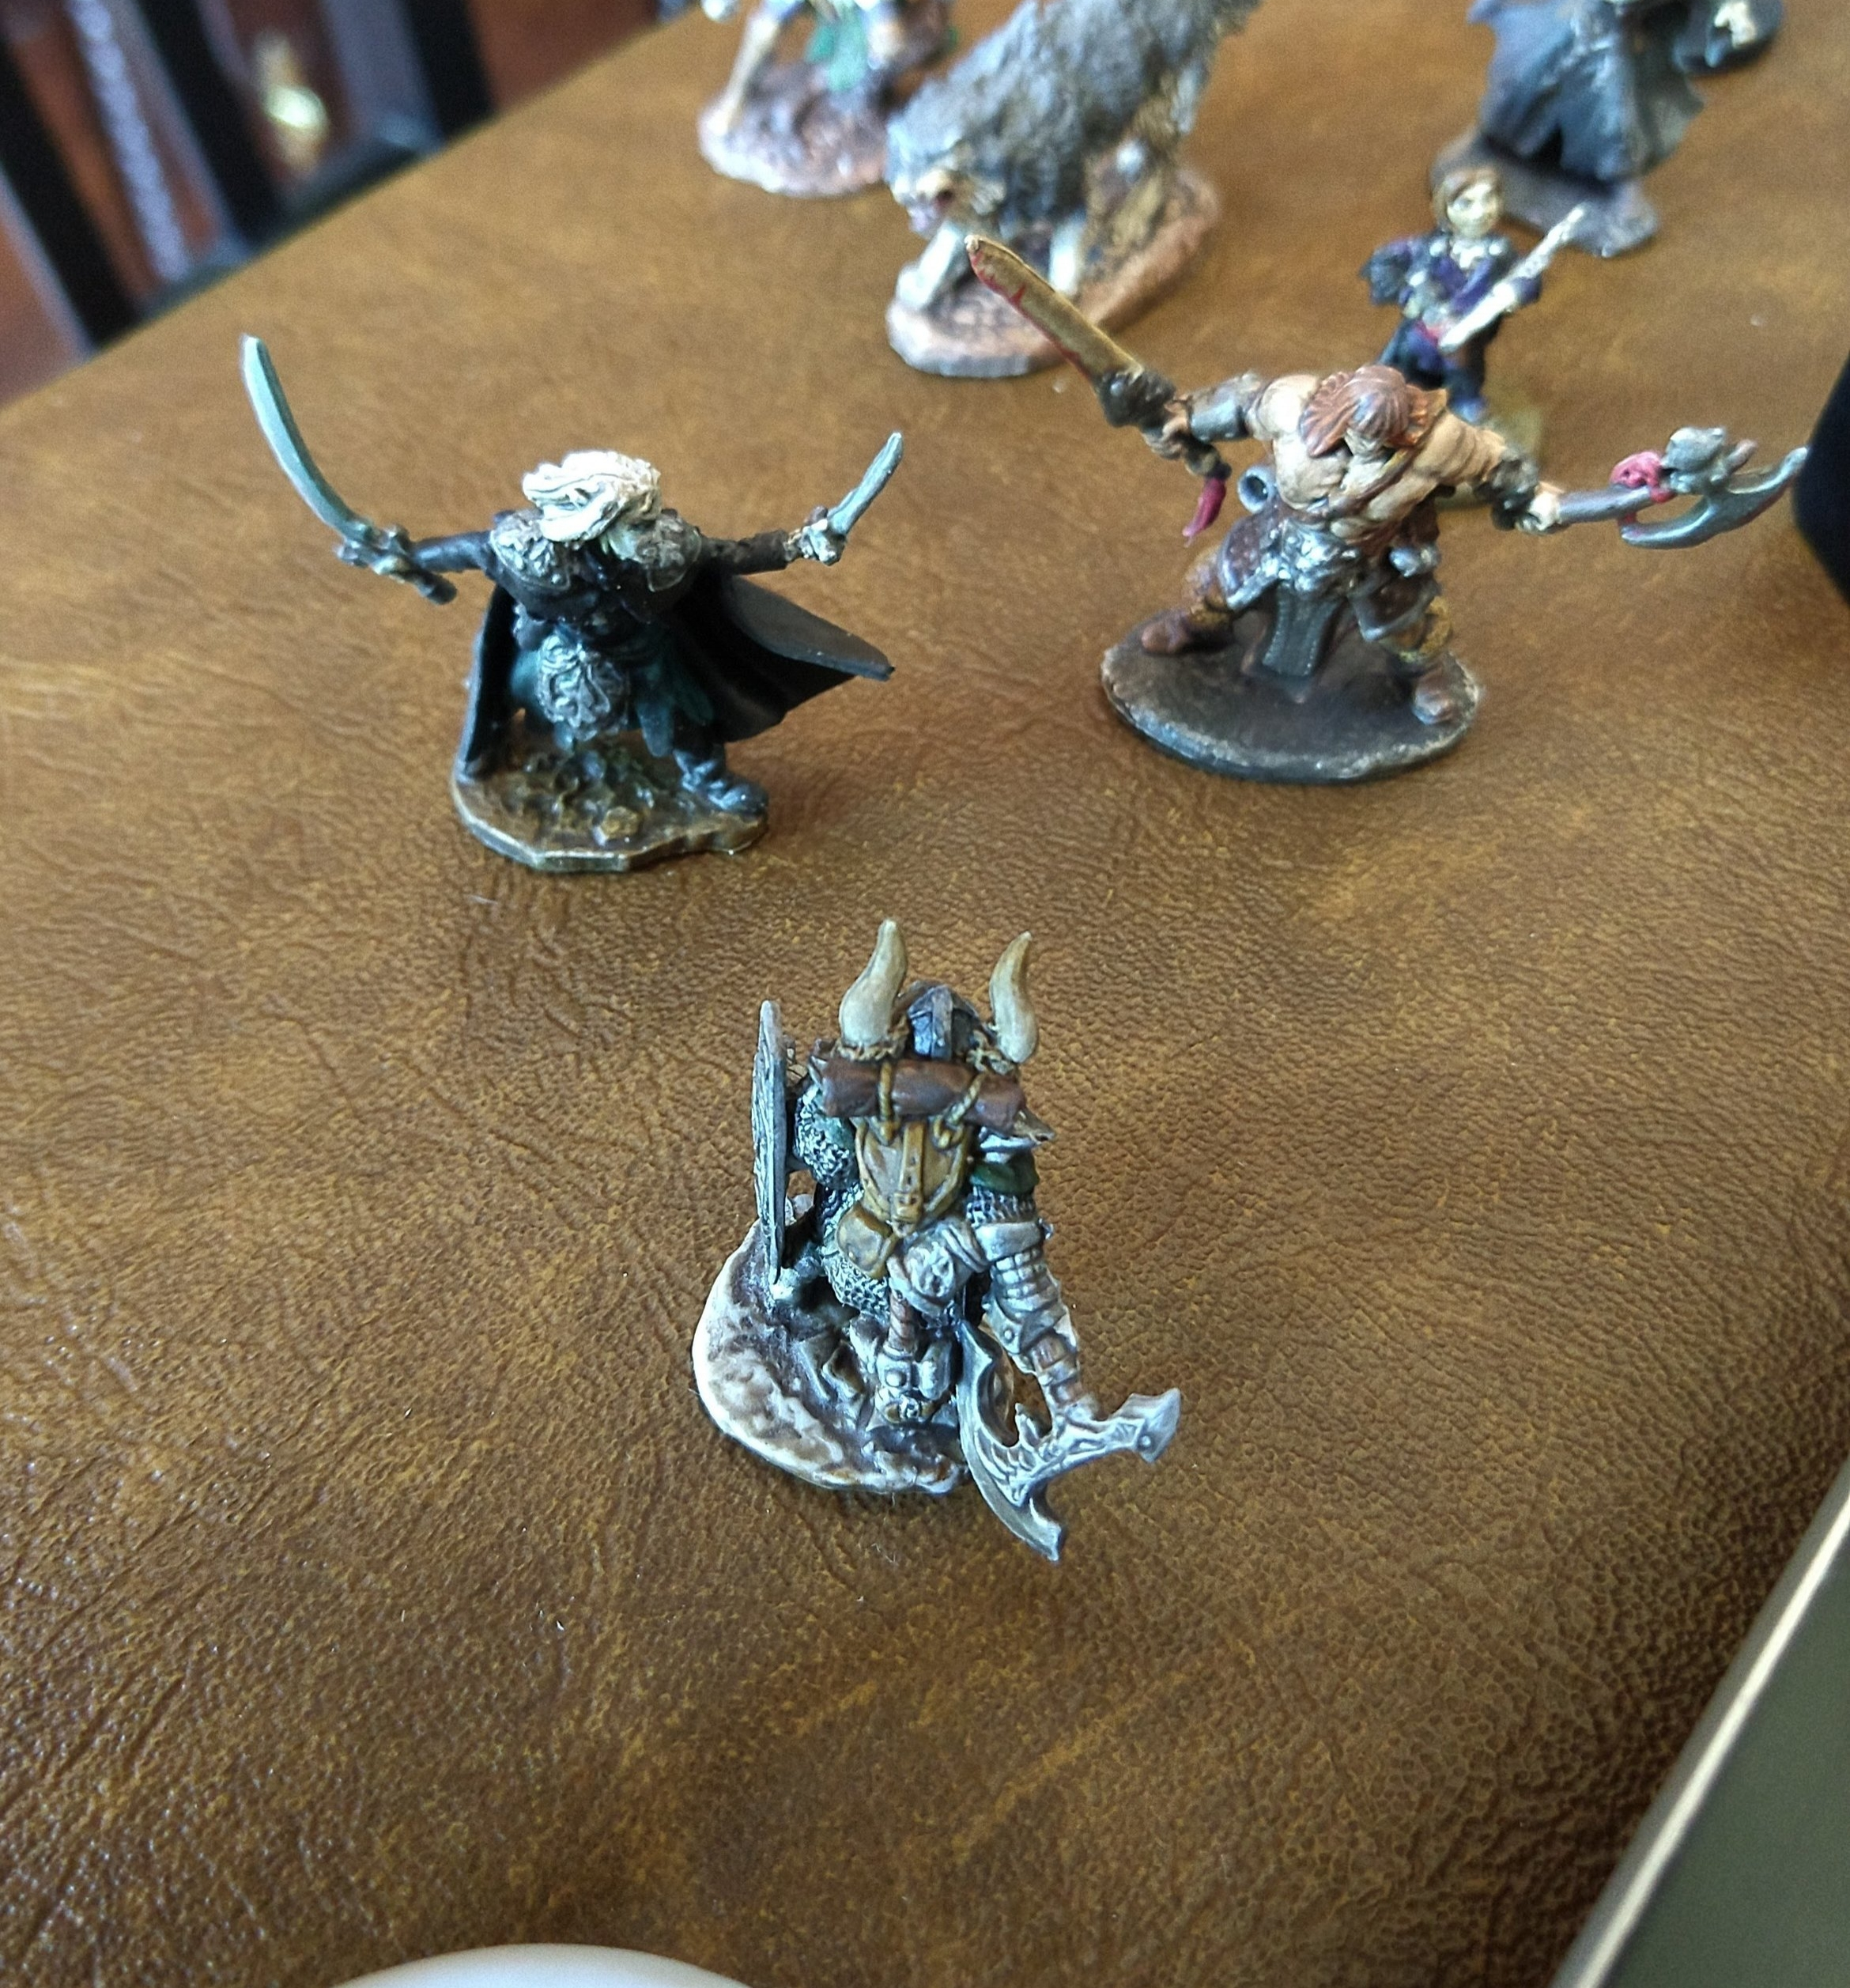 Miniatures after clear coating look at the detail from ton the chainmail and axe from the Army Painter dip.